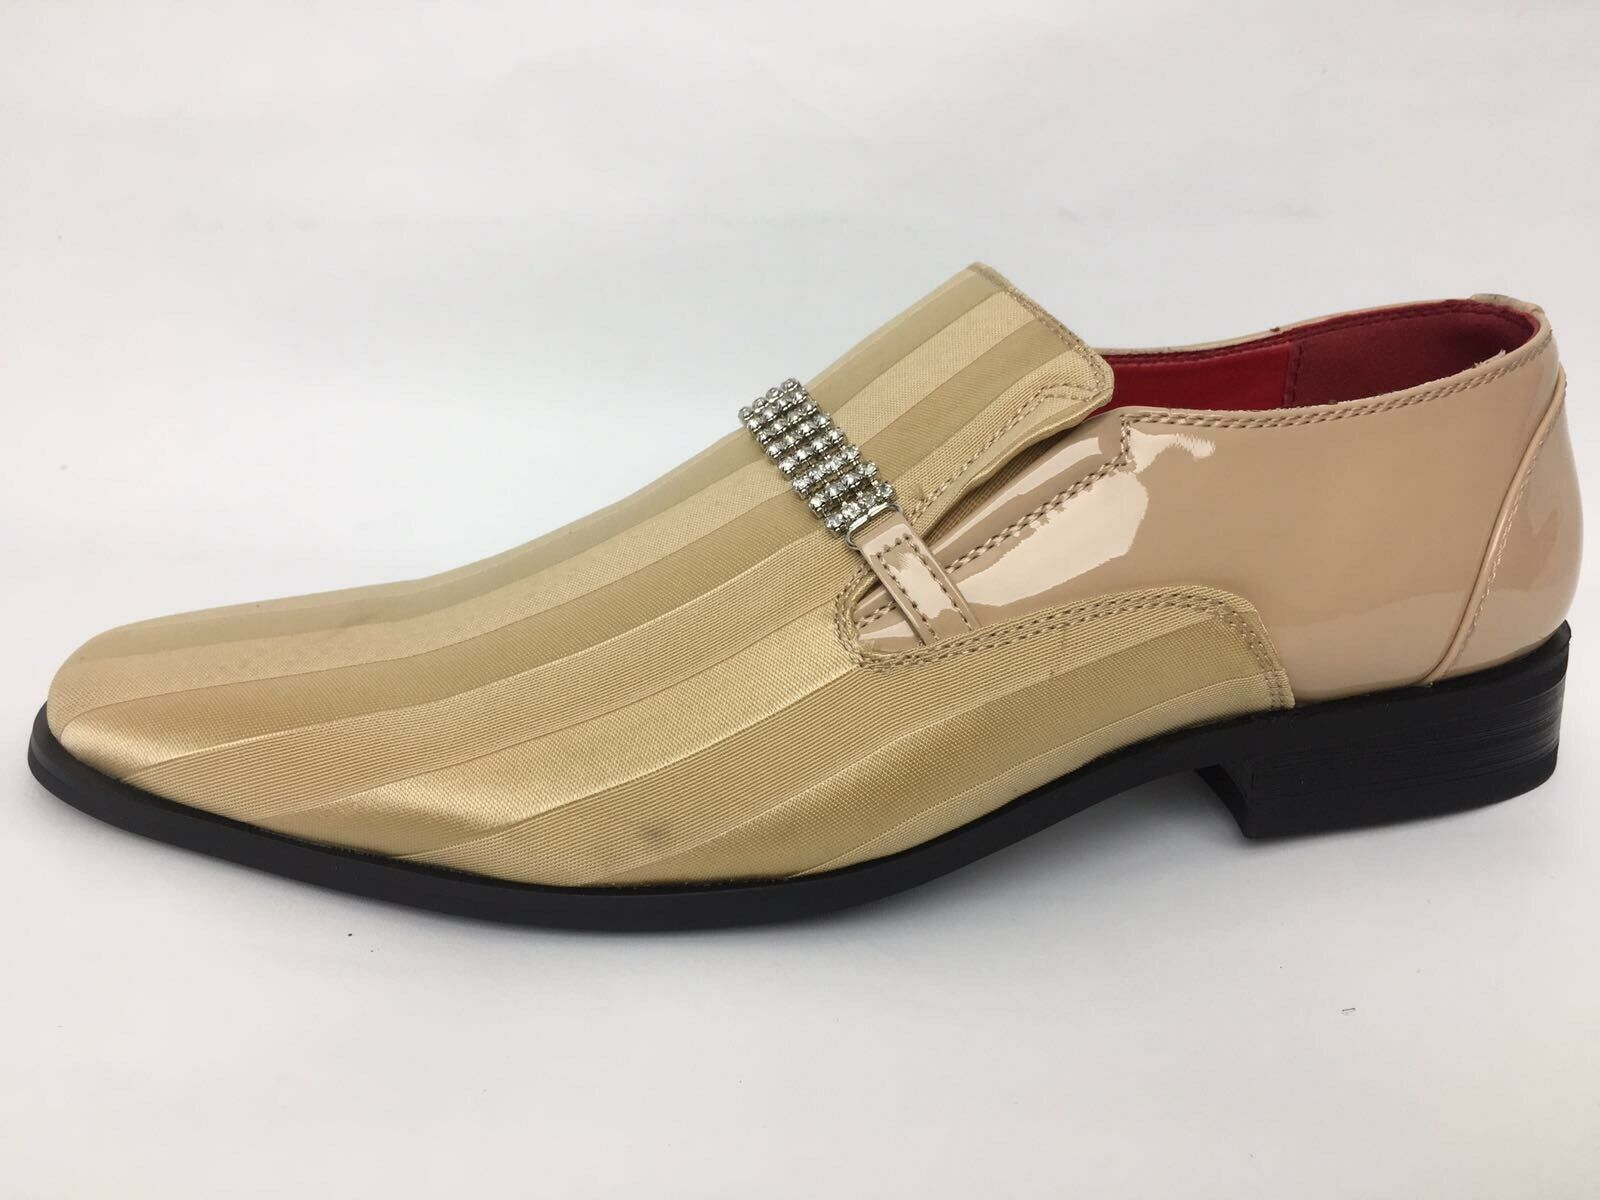 Mens Italian Design Leather Look Diamante Slip On shoes  Colour gold Sizes 6-12